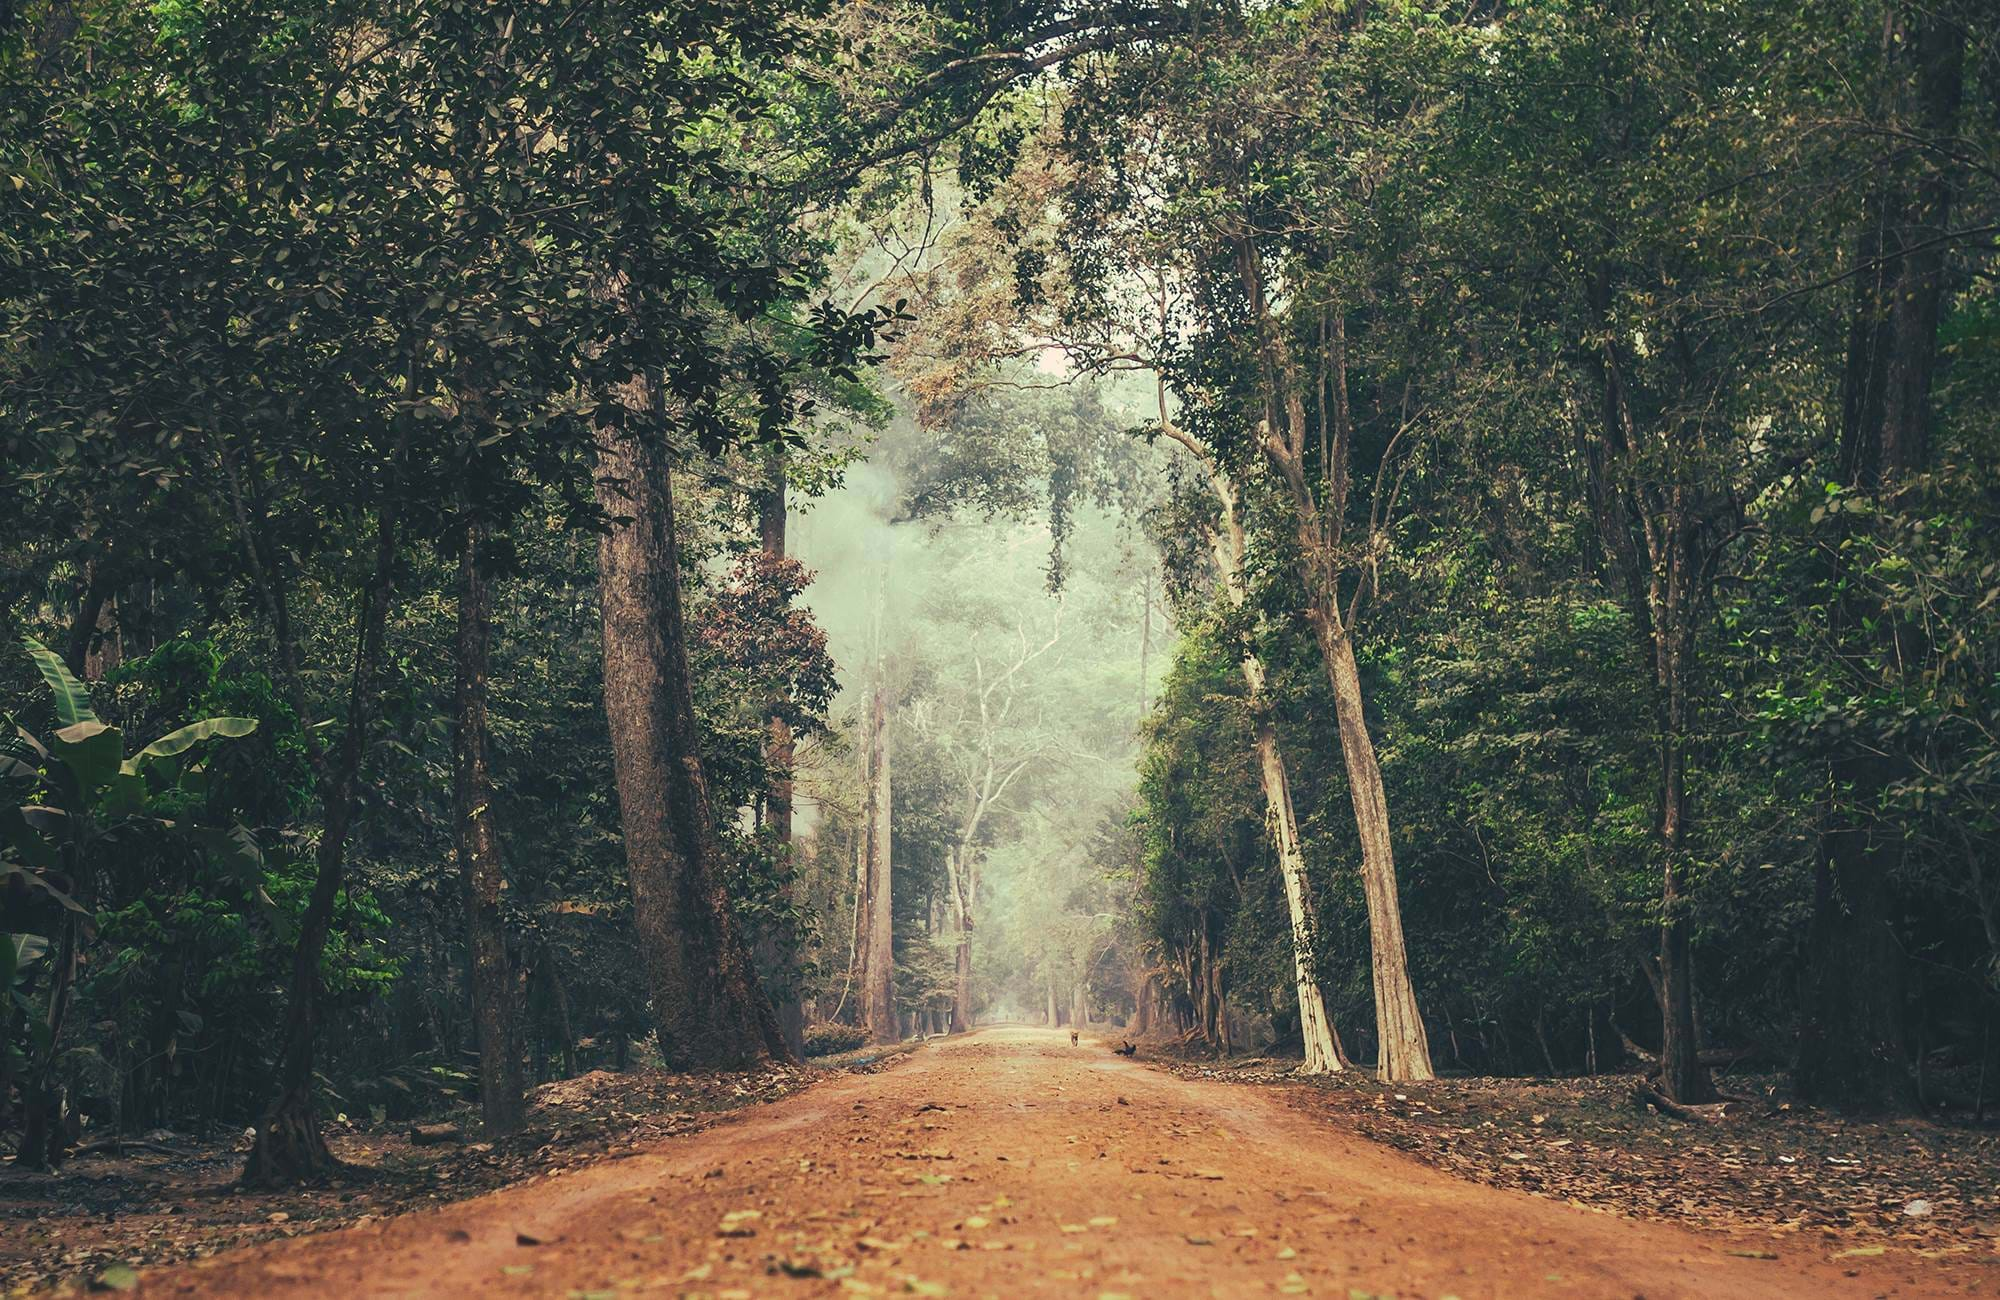 cambodia-jungle-road-cover